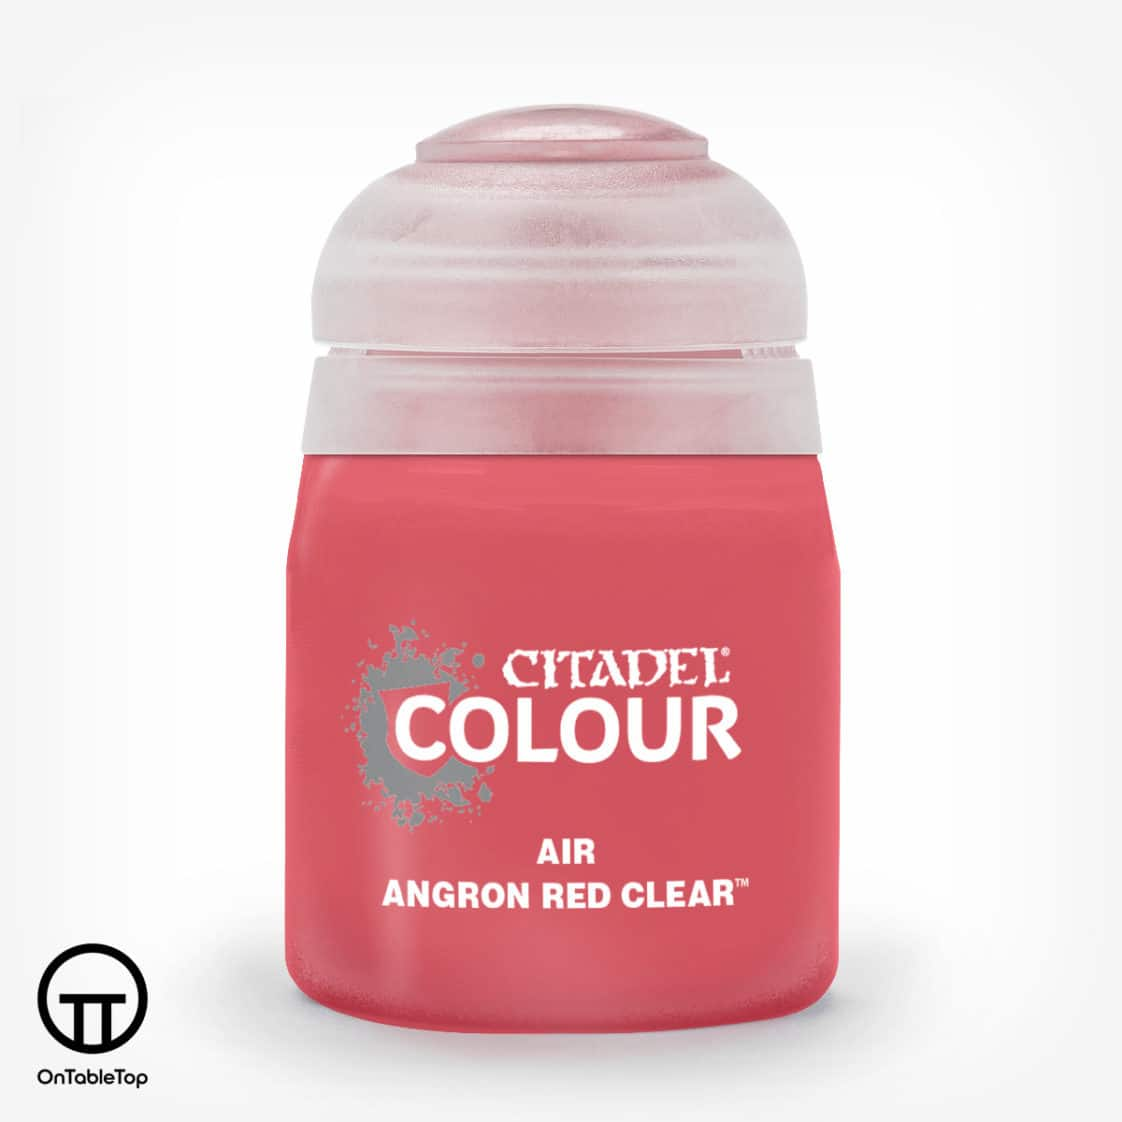 Air-Angron-Red-Clear-9918995810506